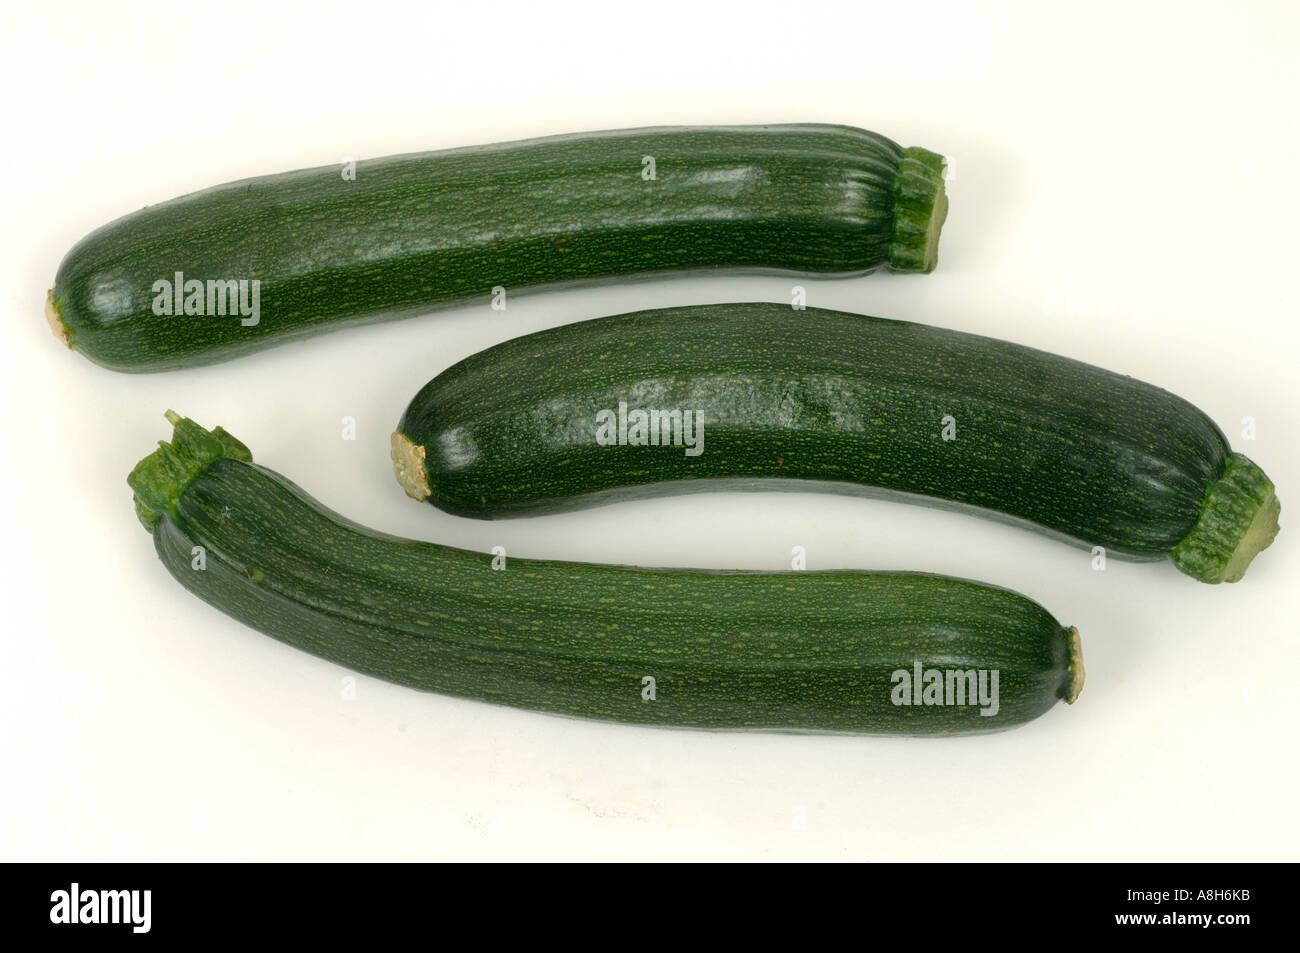 Vegetable produce typical supermarket bought courgettes - Stock Image